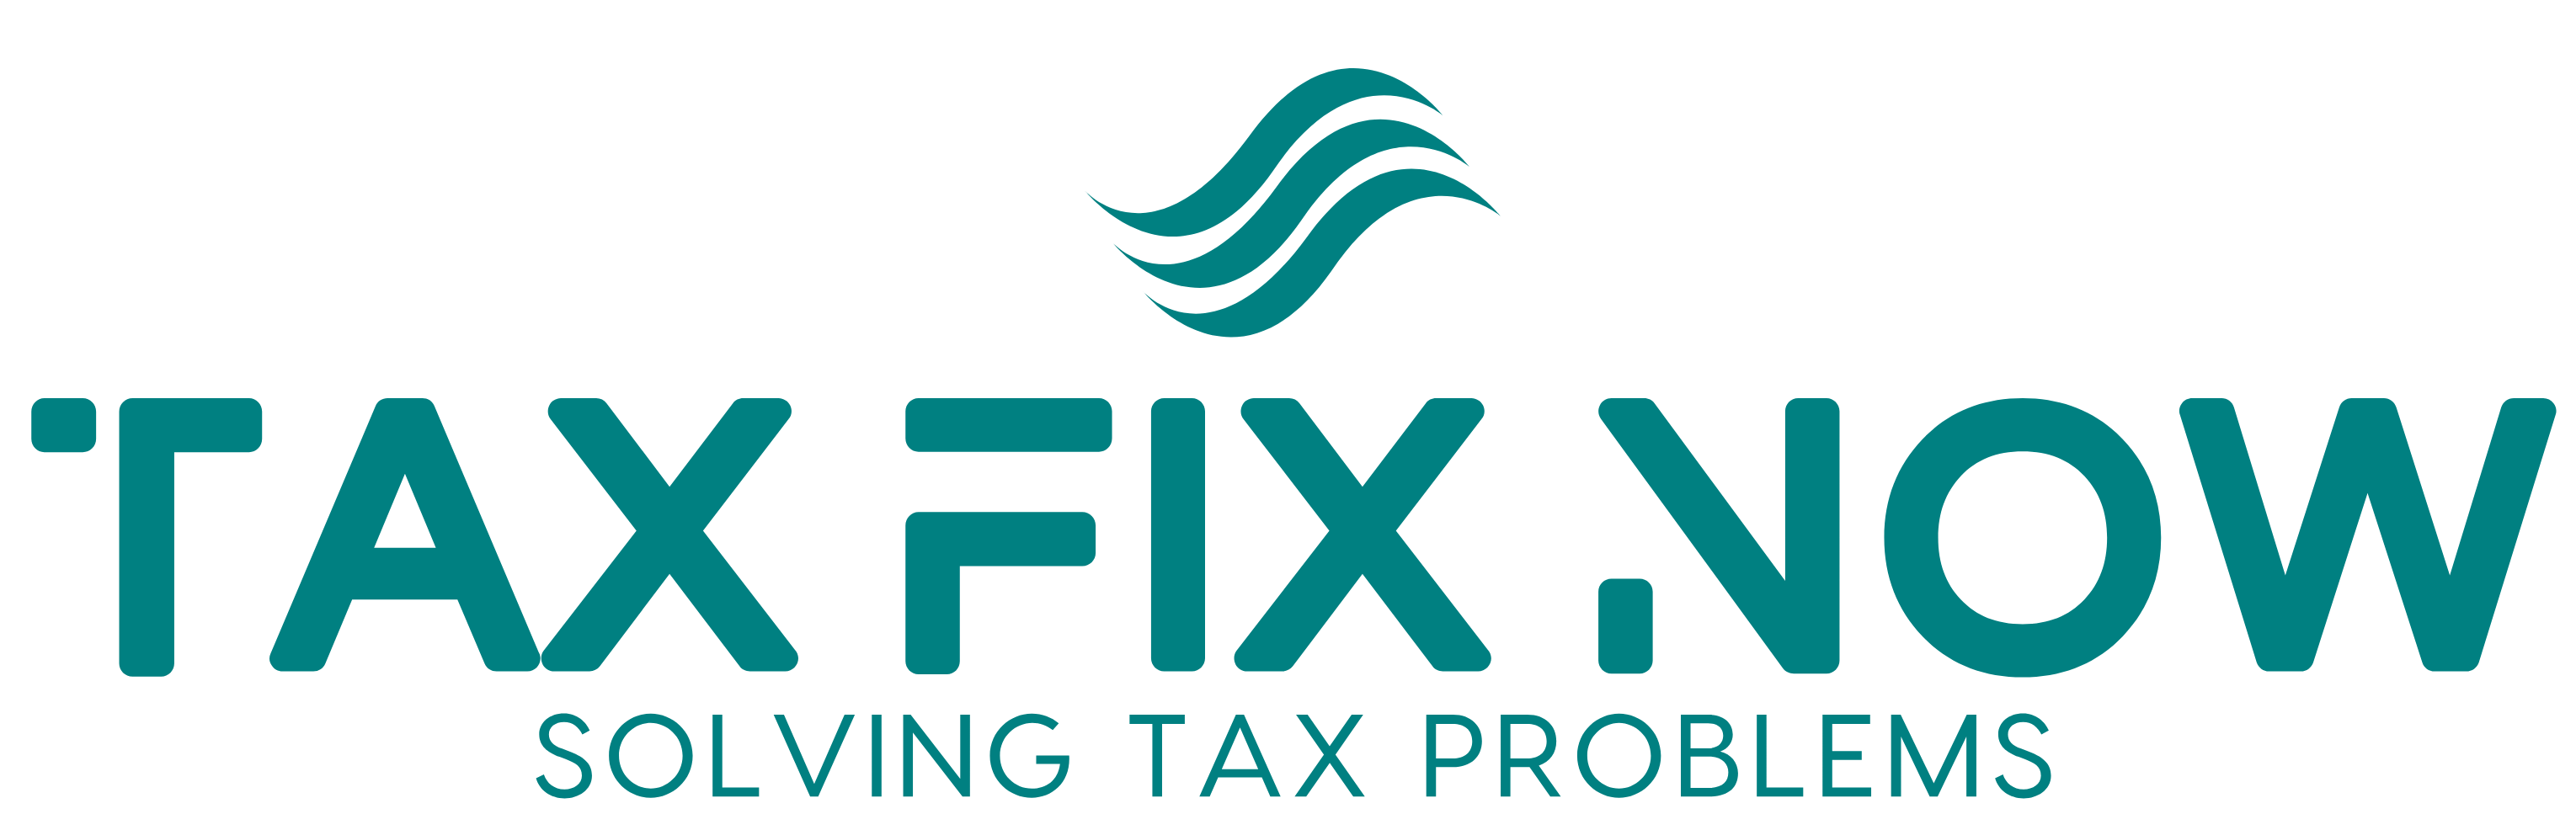 Highland Village, TX Bookkeeping Firm | Frequently Asked Questions Page | Tax Fix Now